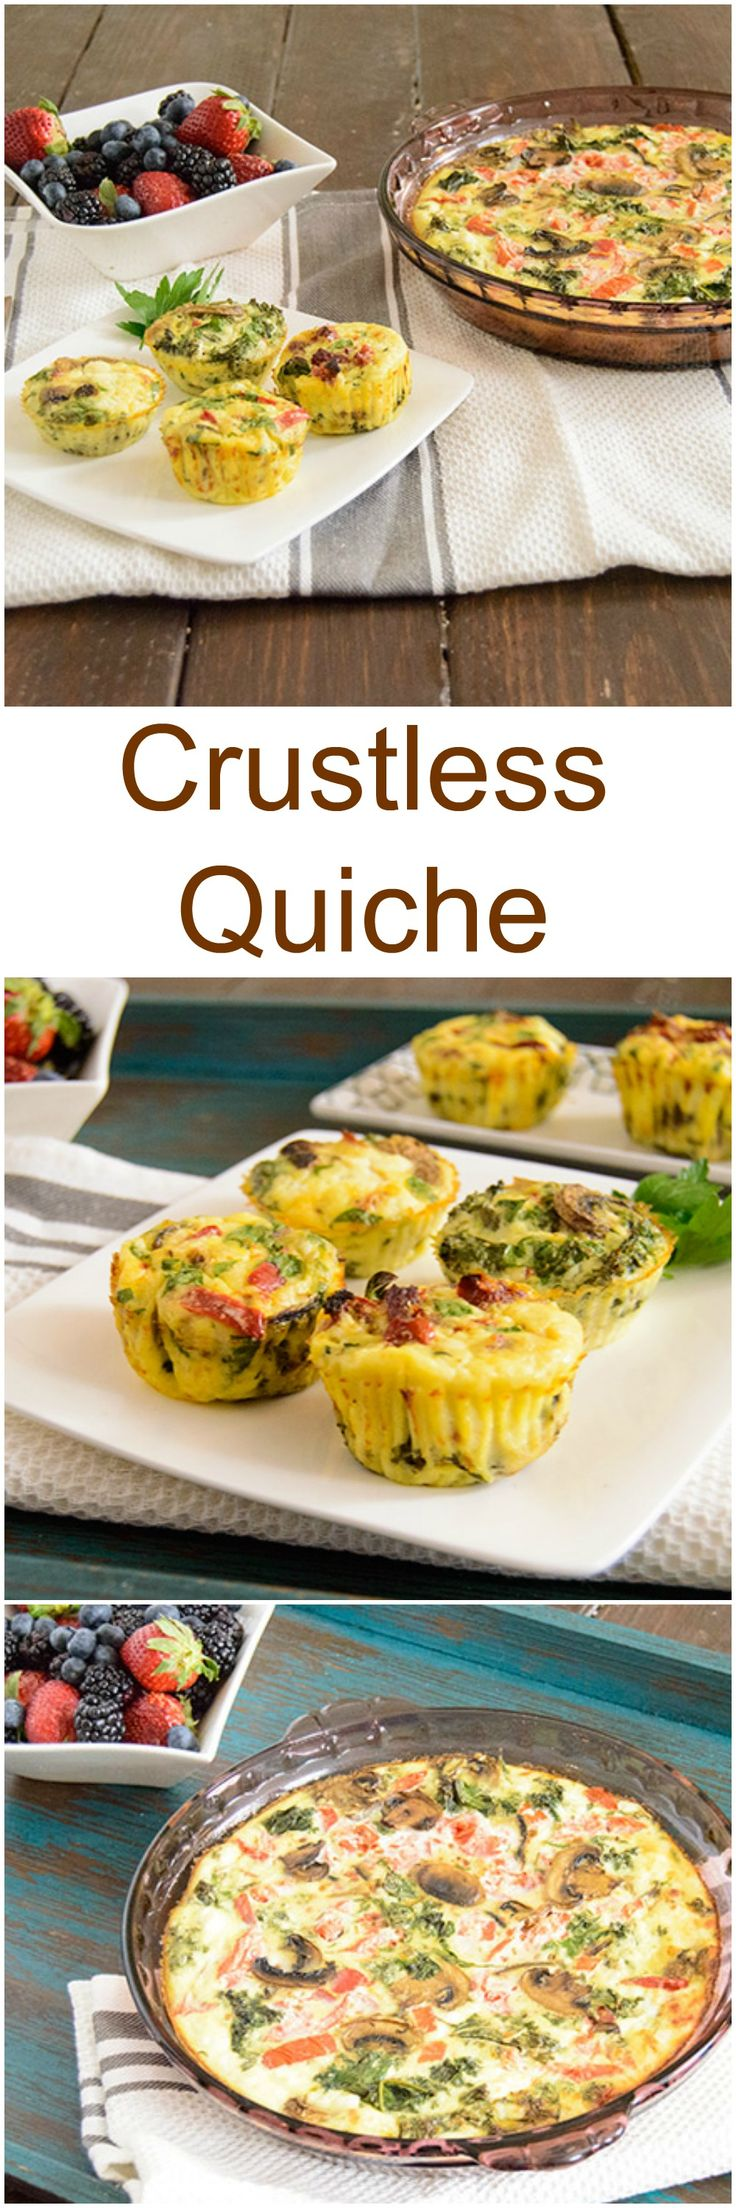 quiche make ahead breakfast and brunch on pinterest. Black Bedroom Furniture Sets. Home Design Ideas